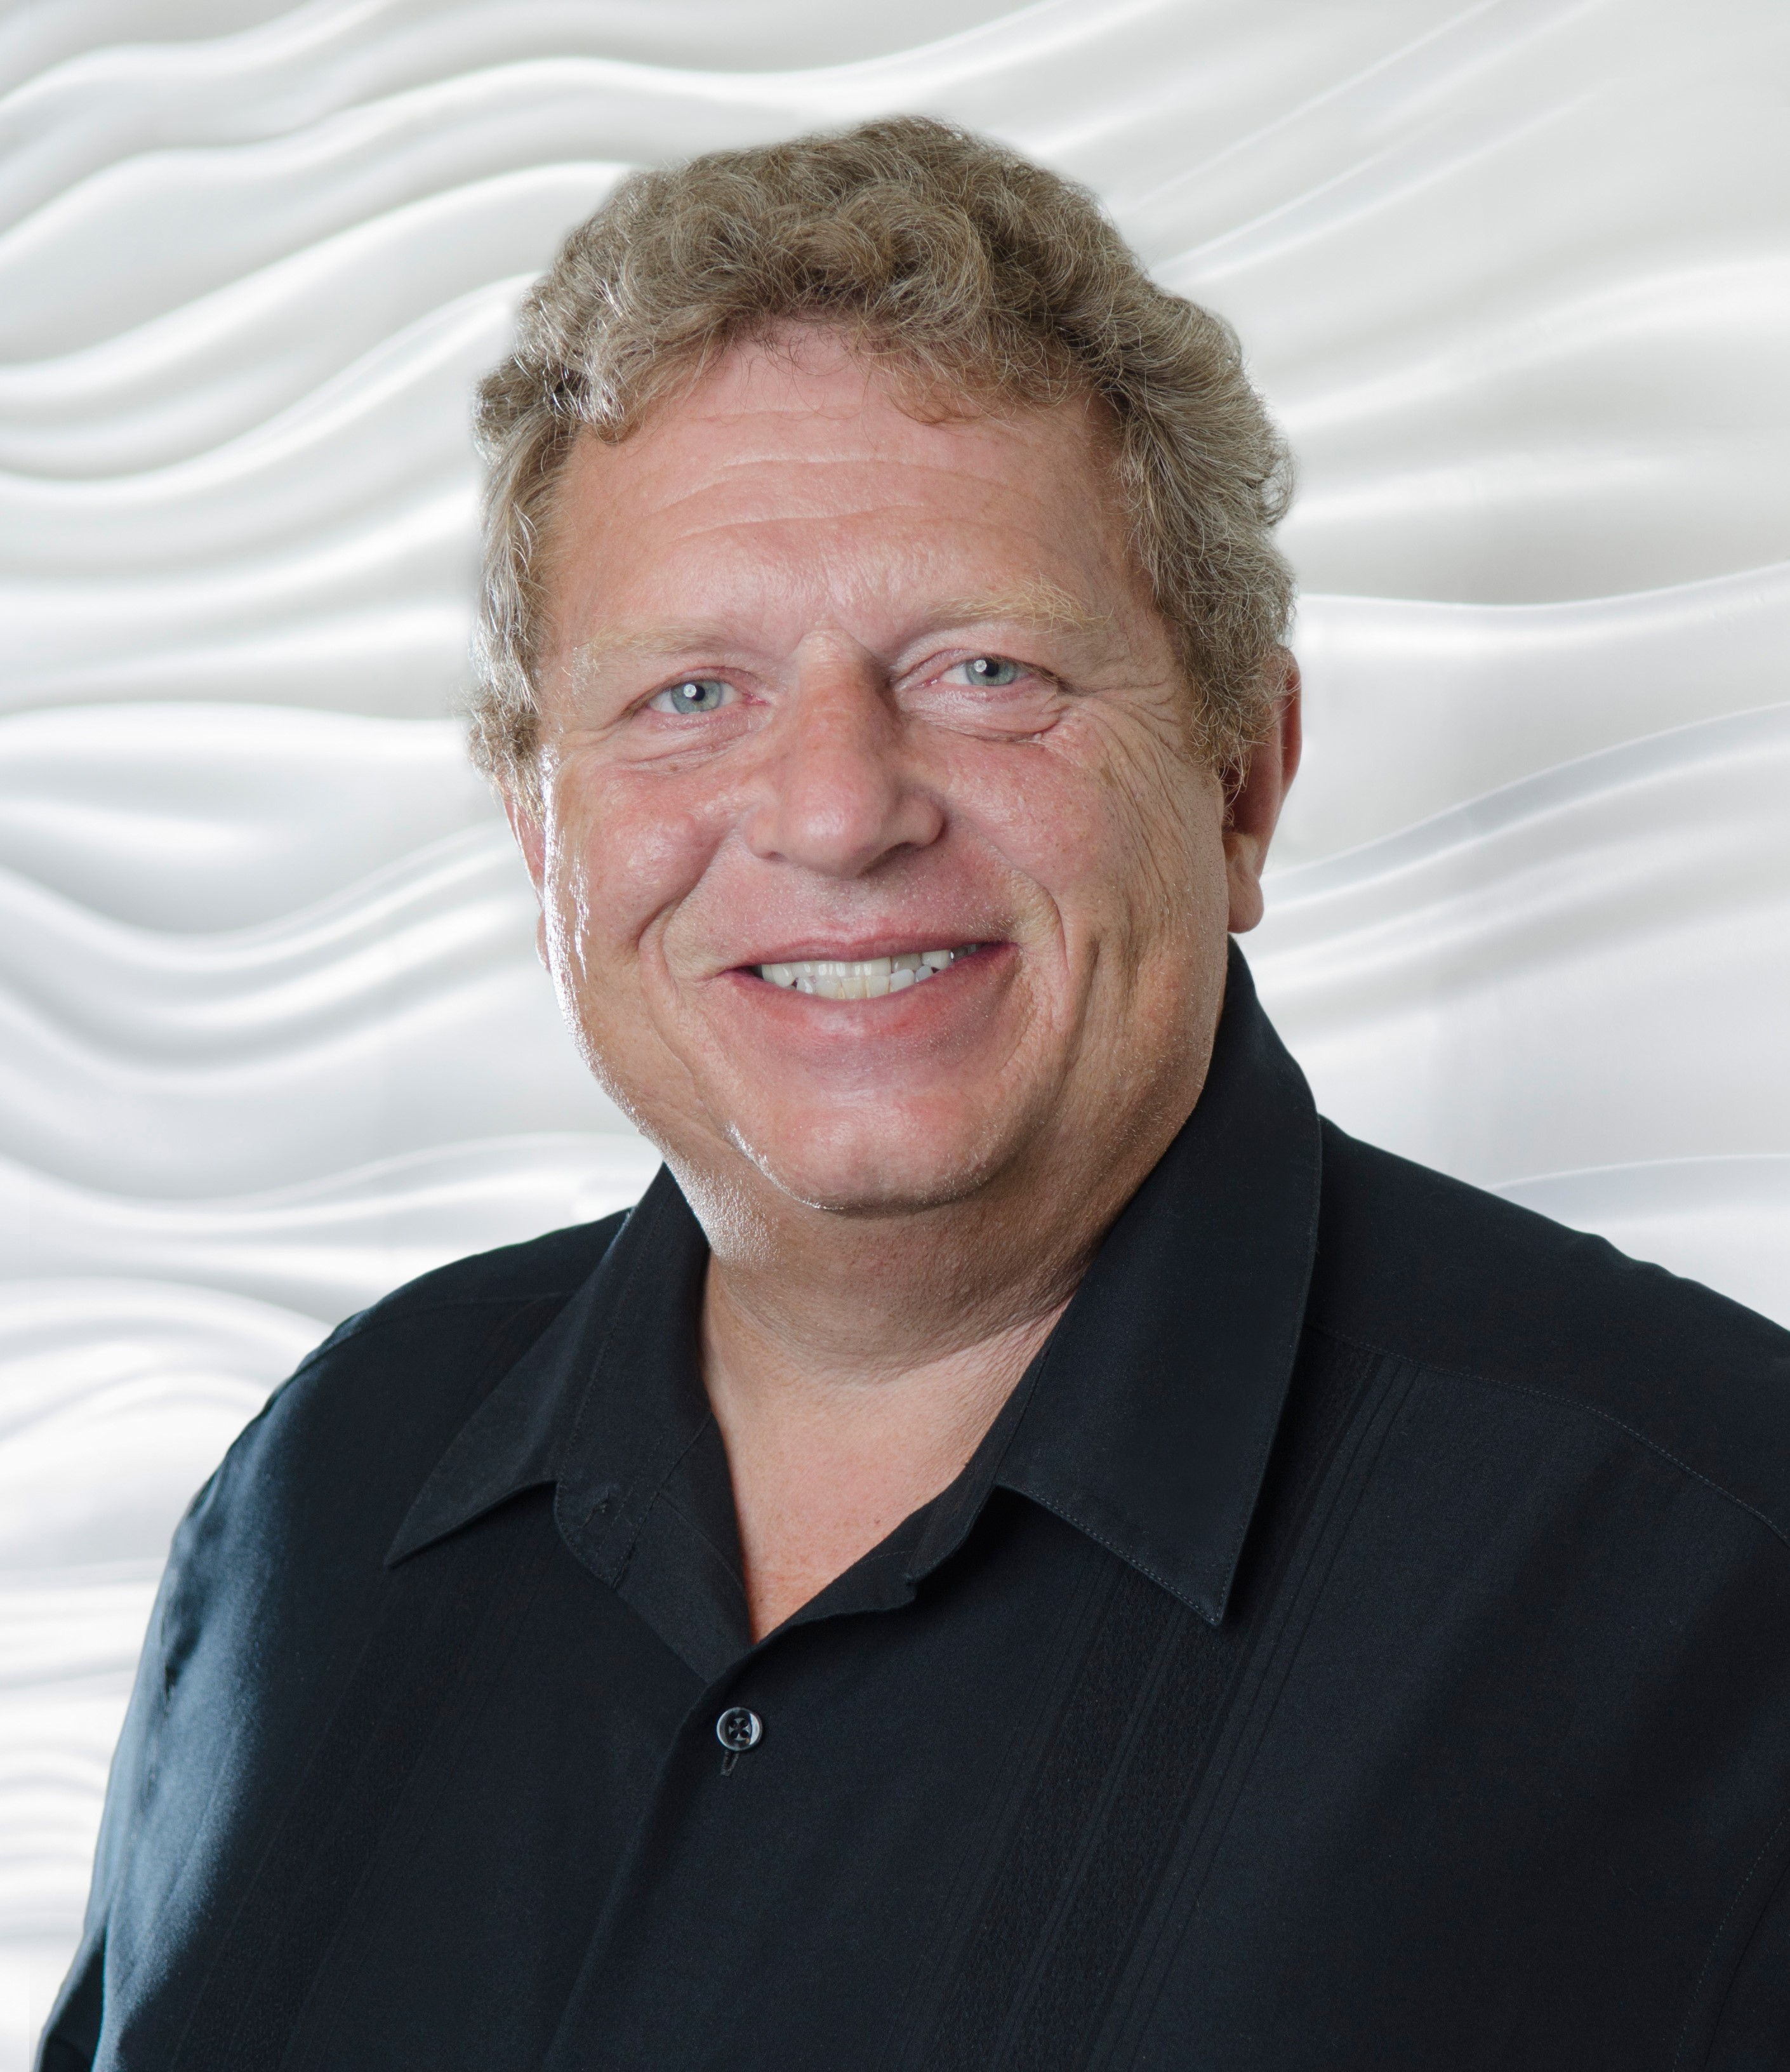 Raymond Huggenberger is a member of the board of directors at Intricon, a joint development manufacturer in micromedical technology